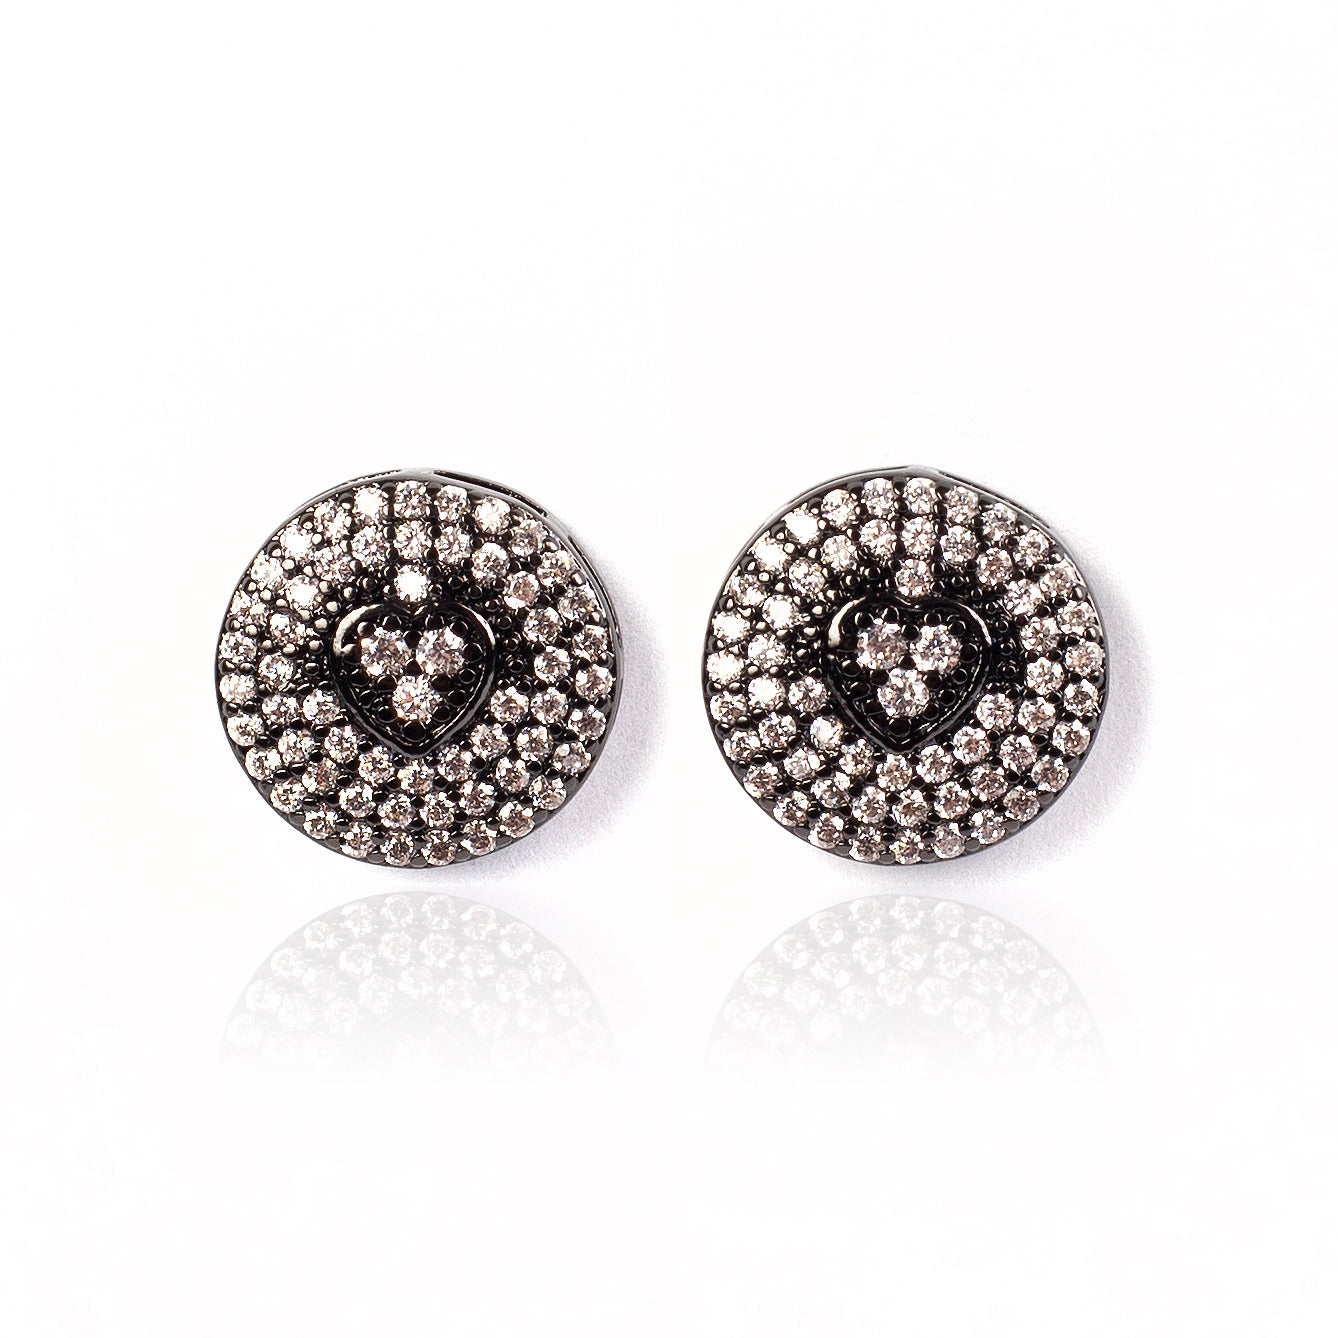 CIRCLE HEART EARRINGS | Black Rhodium Plated